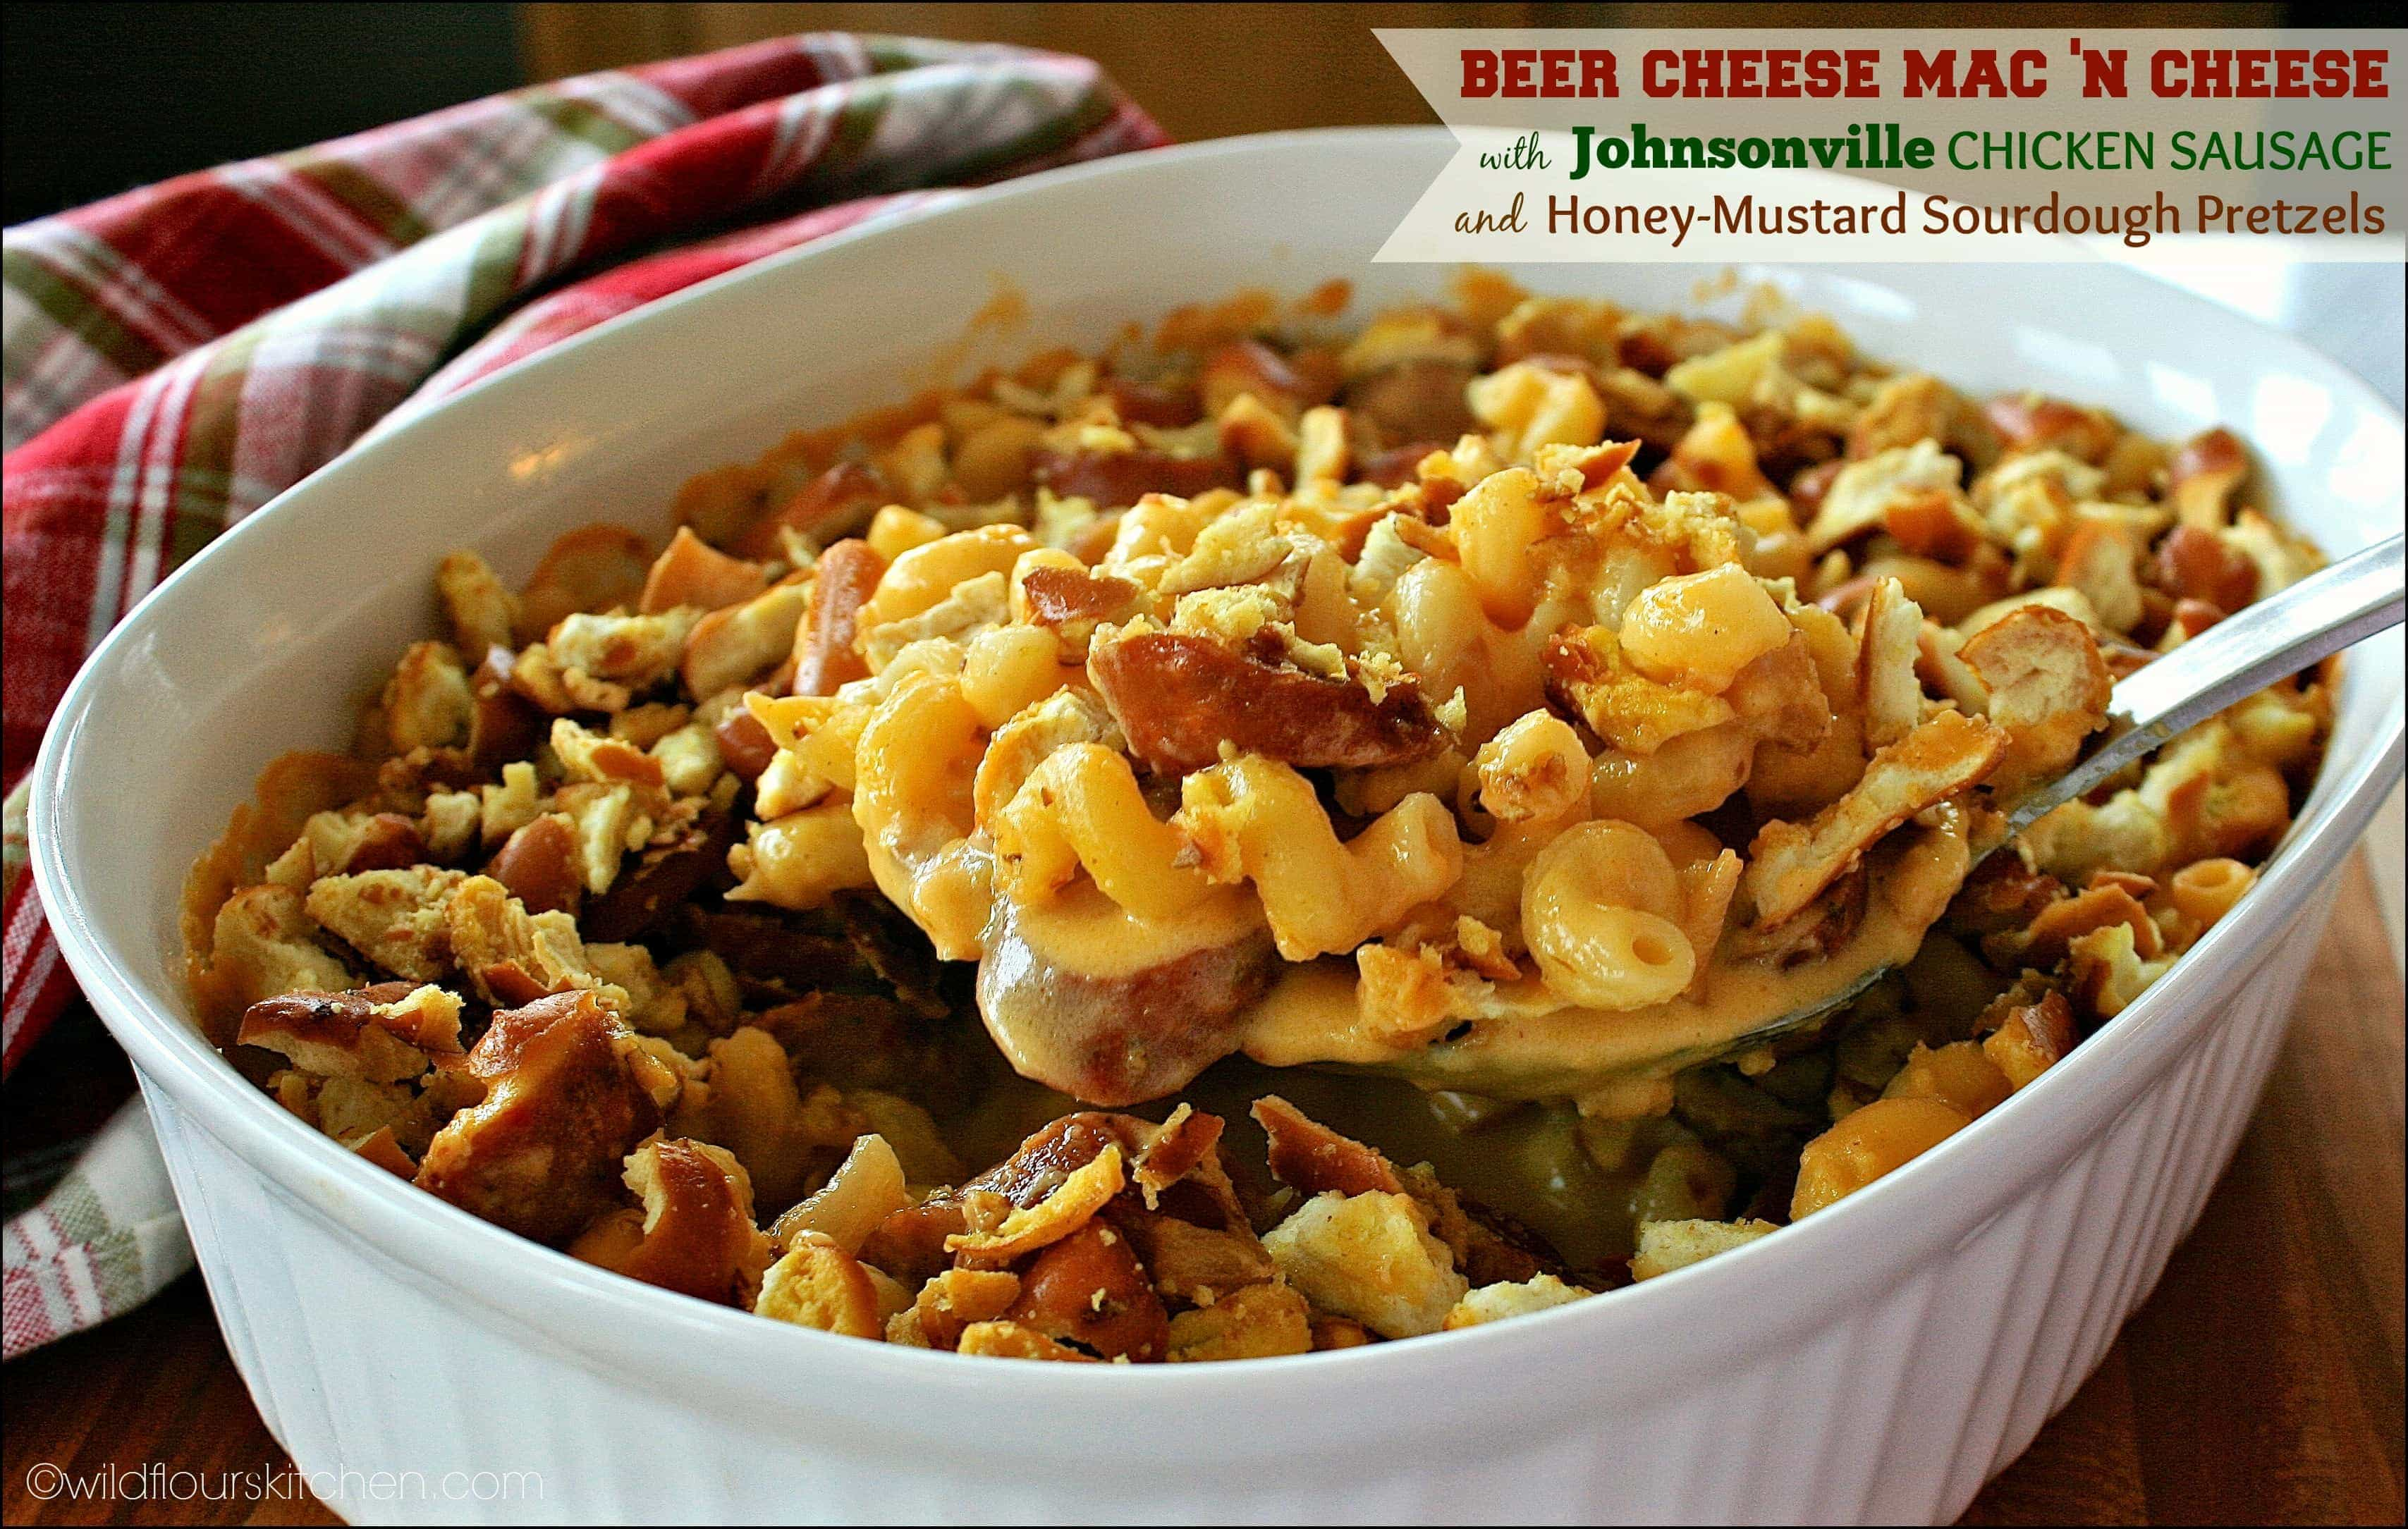 Whole Grain Mustard & Sausage Beer Cheese Mac 'n Cheese with Sourdoug...